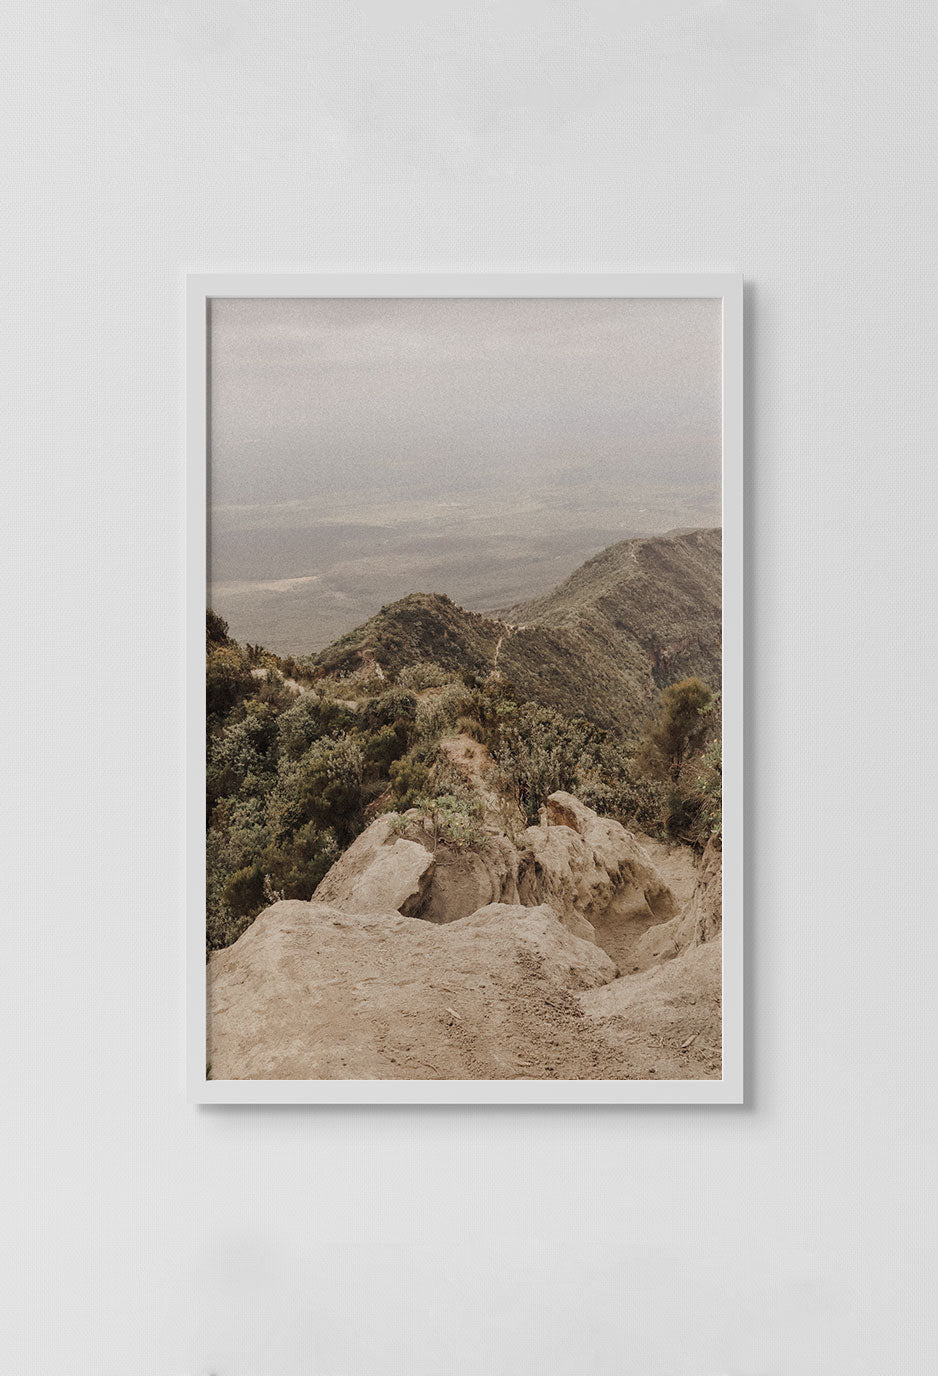 image of photograph of mountain top with trees and valleys in the water in white frame on white wall.